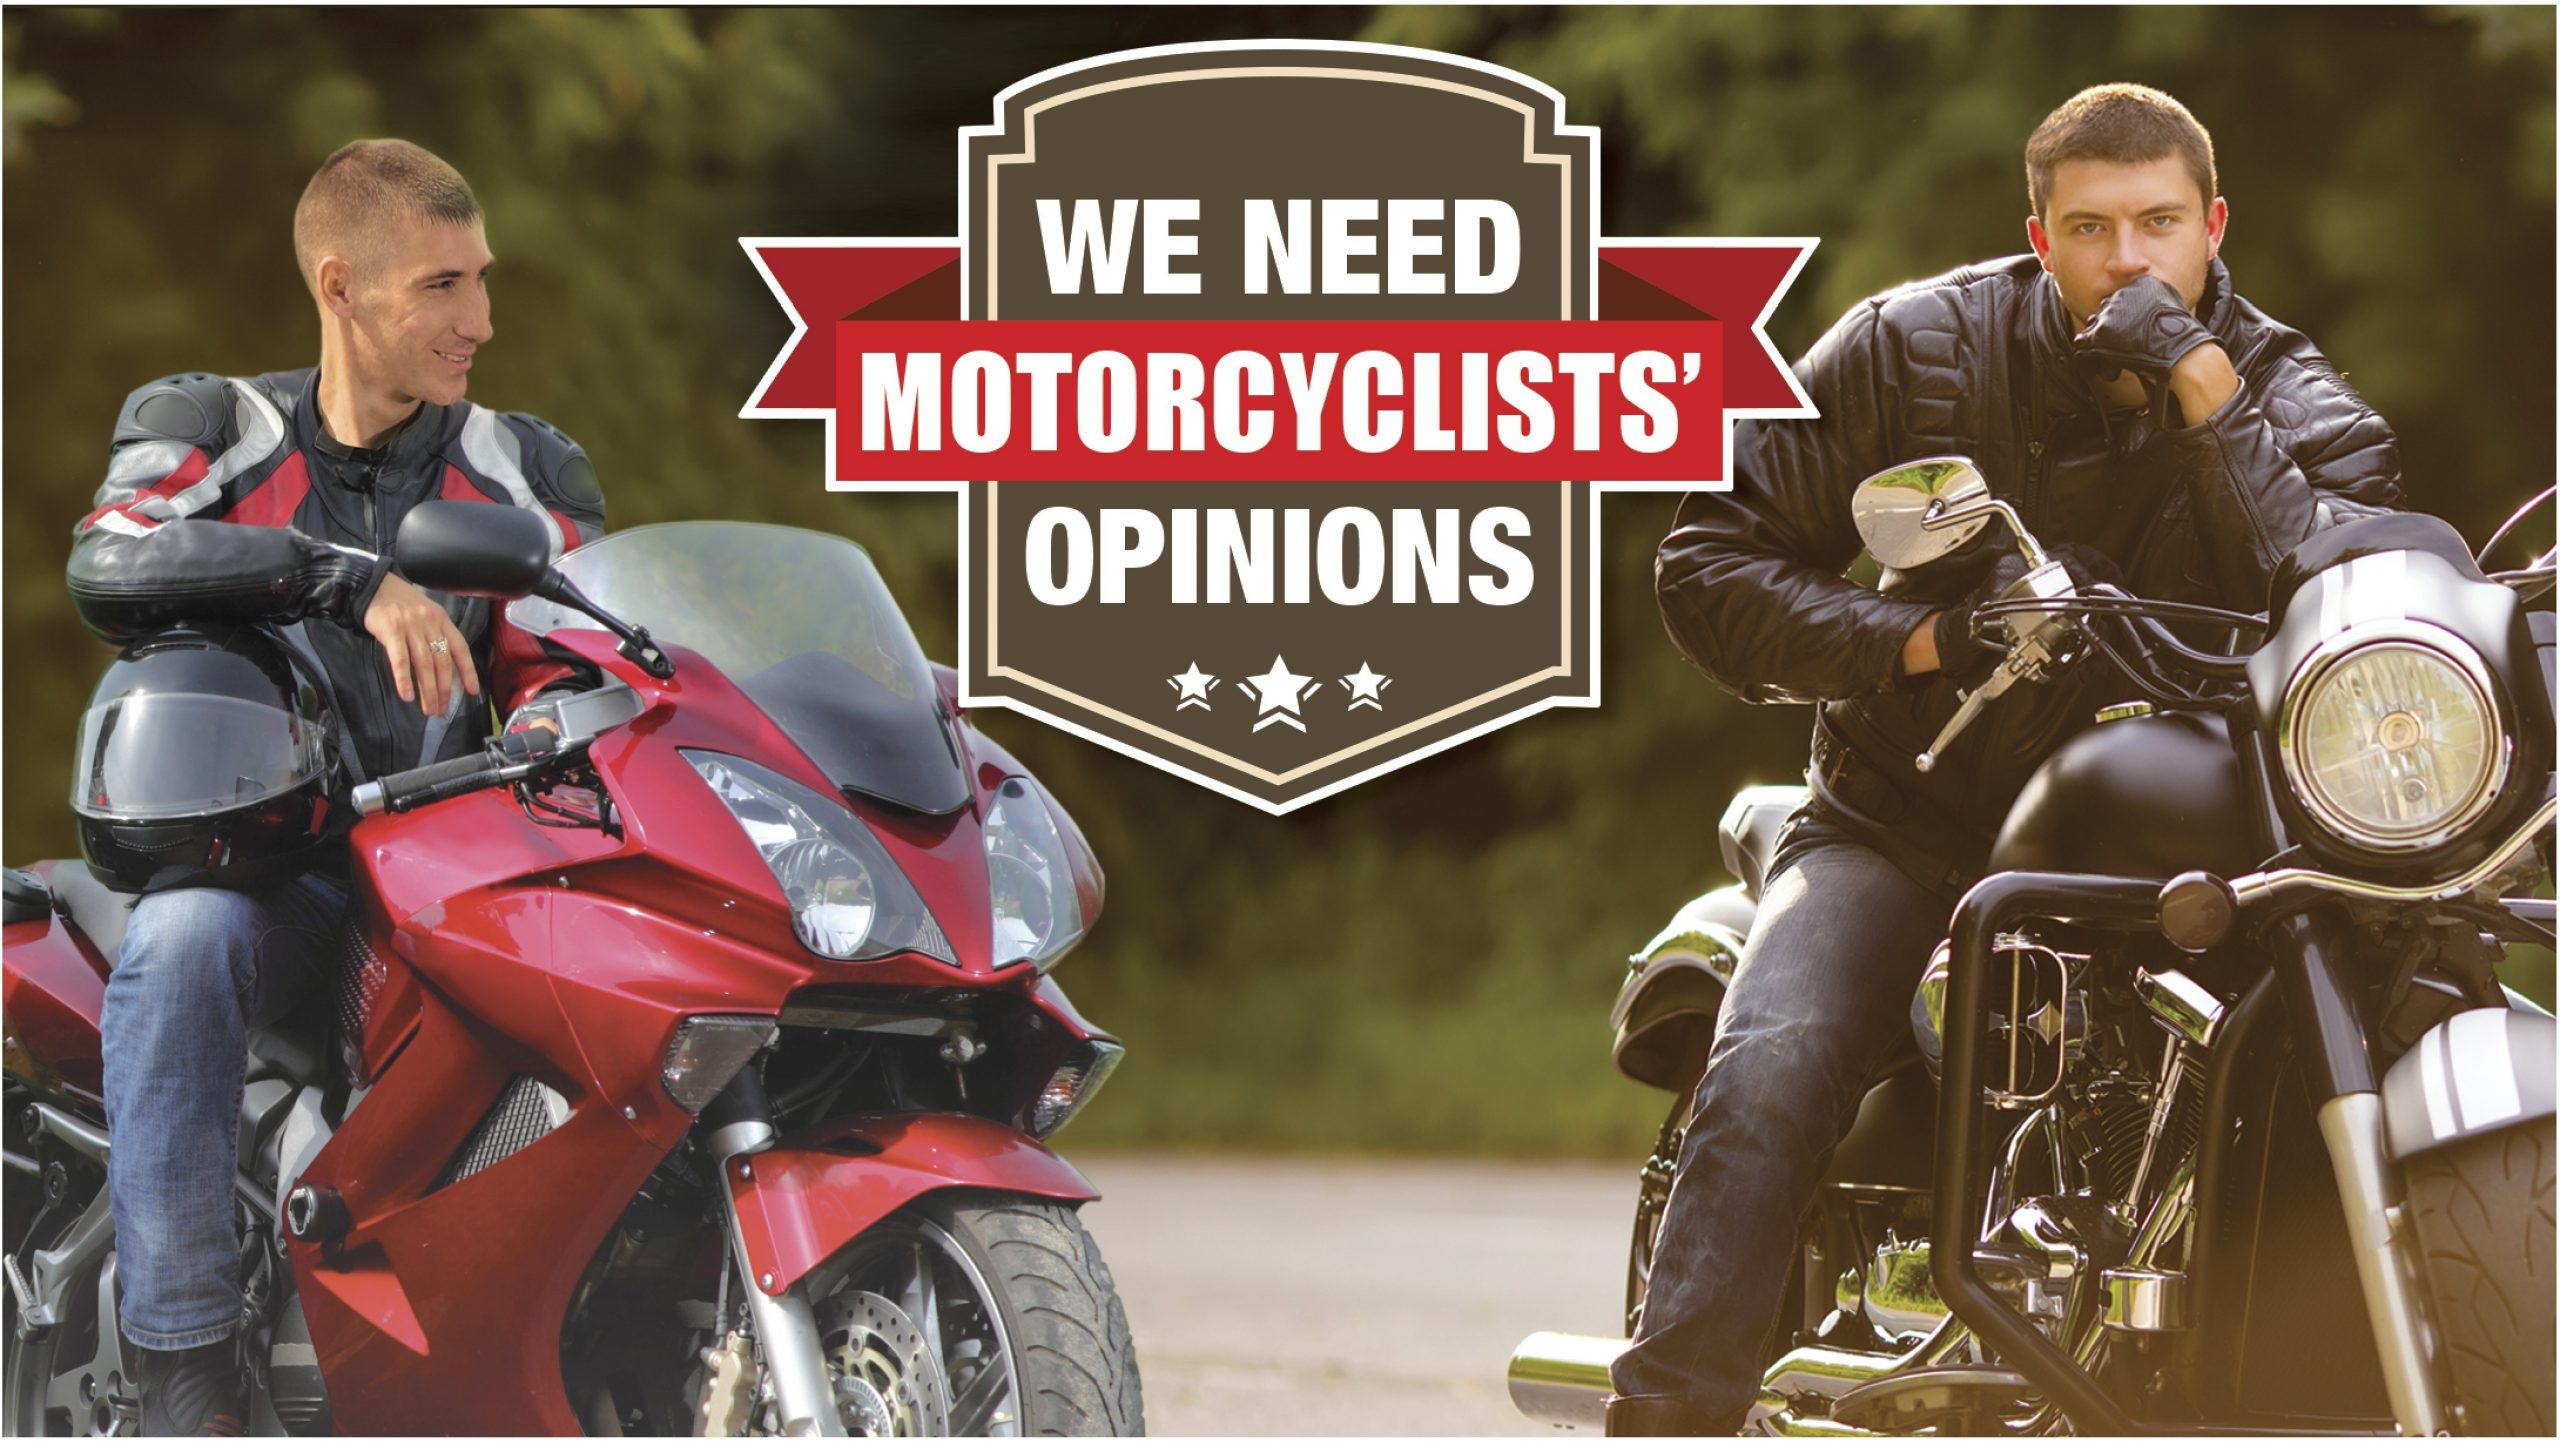 MC motocycle survey header image